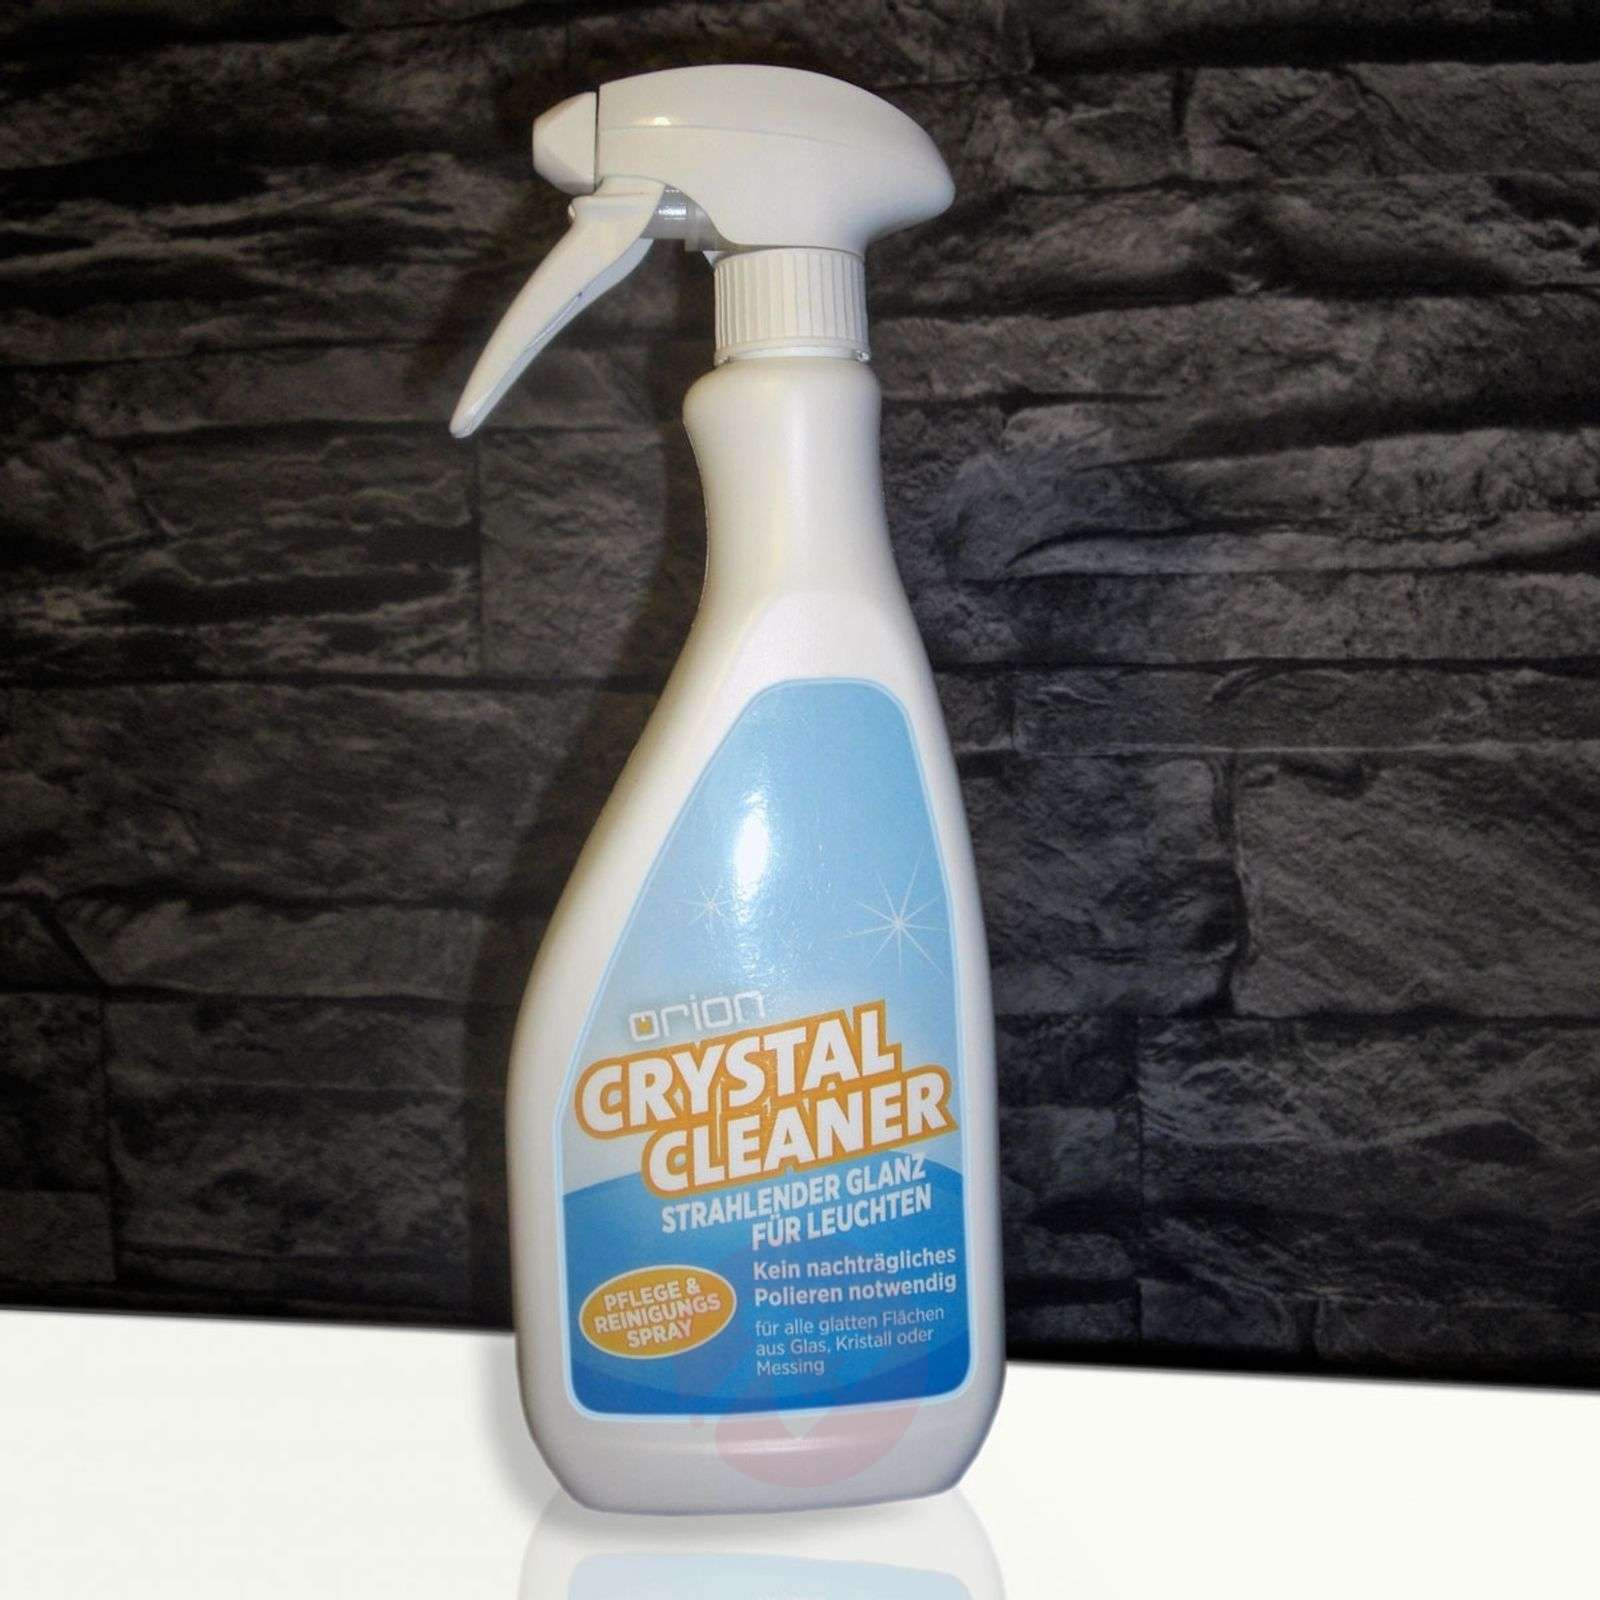 Spray detergente per cristallo ORION-7253248-01